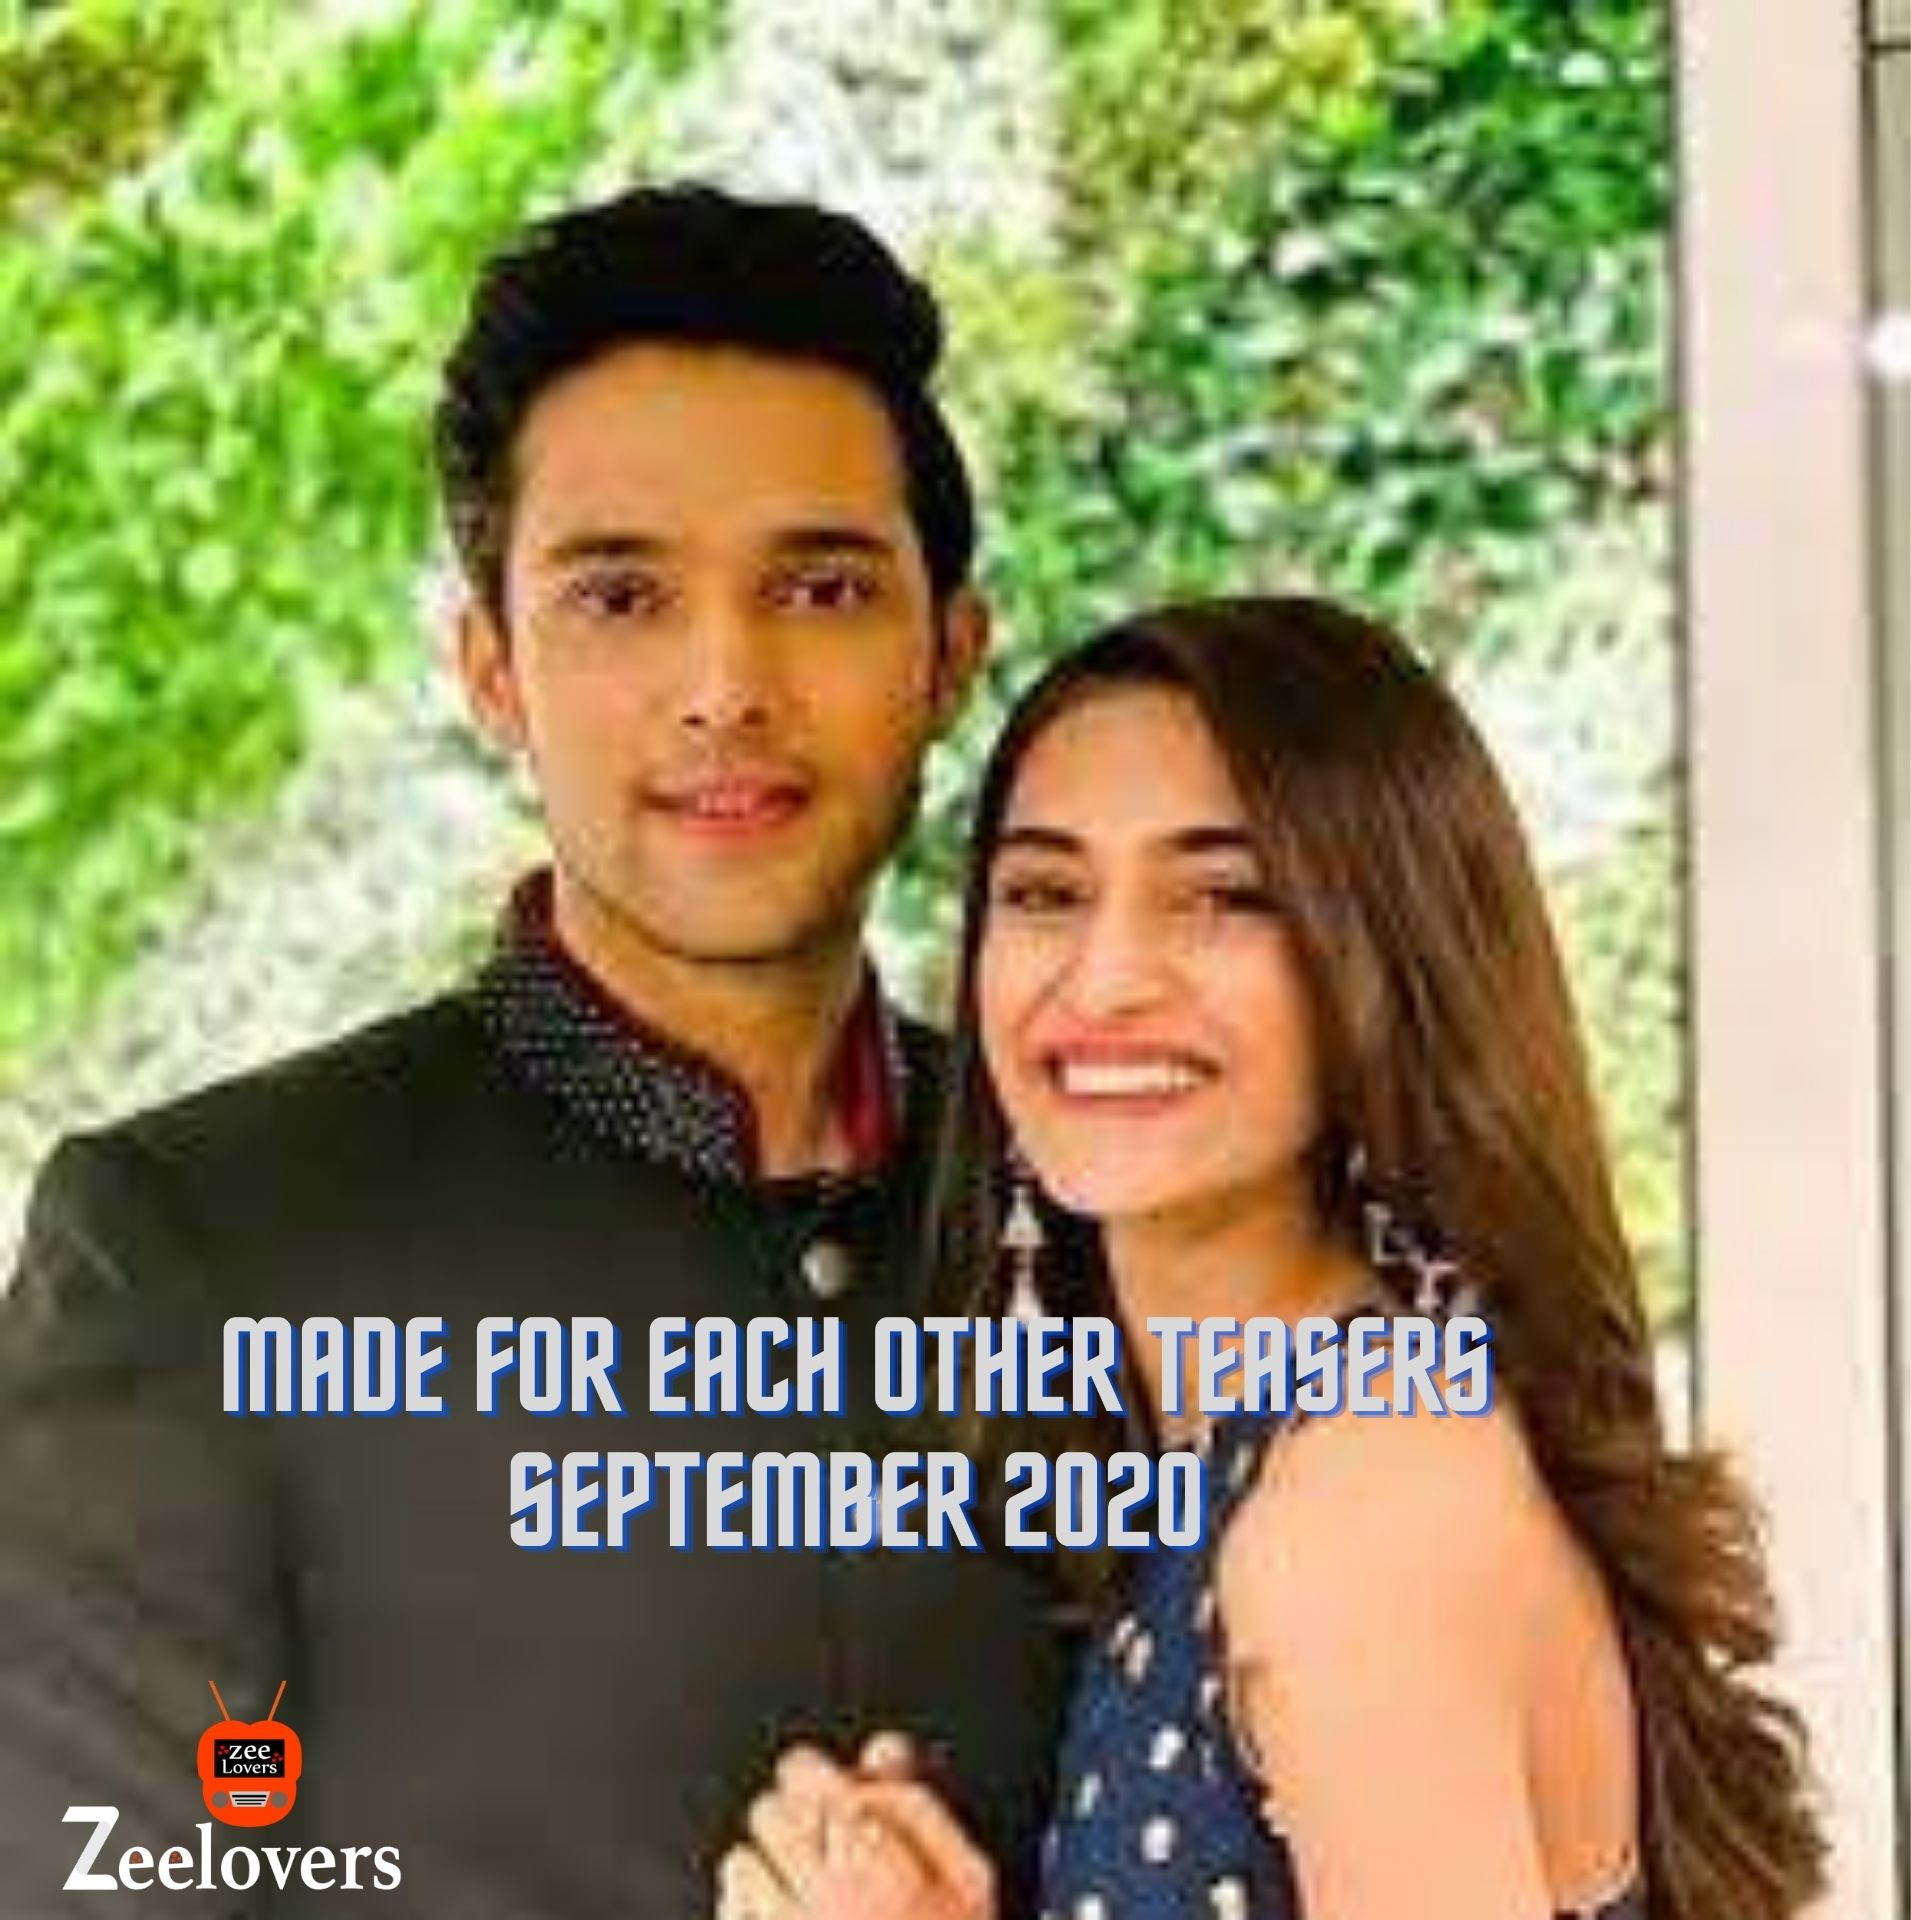 Made for each Other Teasers September 2020